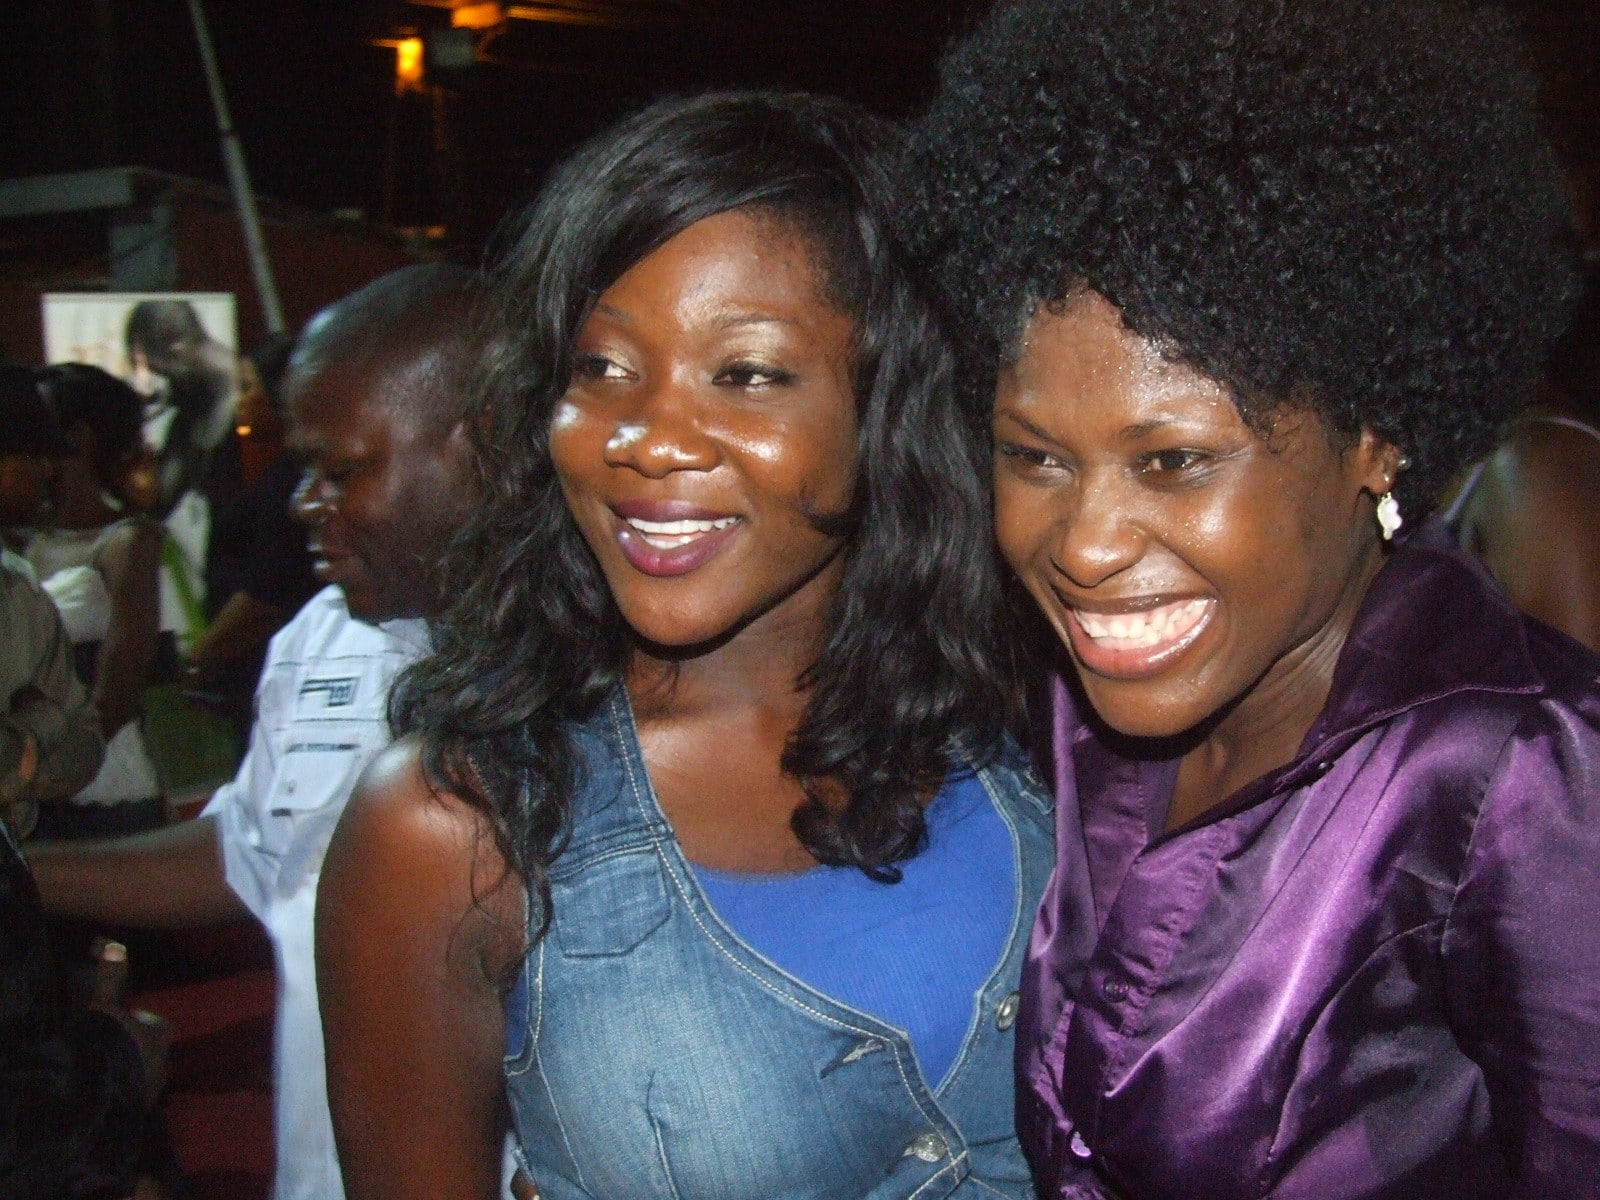 Mercy Johnson celebrates with Uche Jombo.